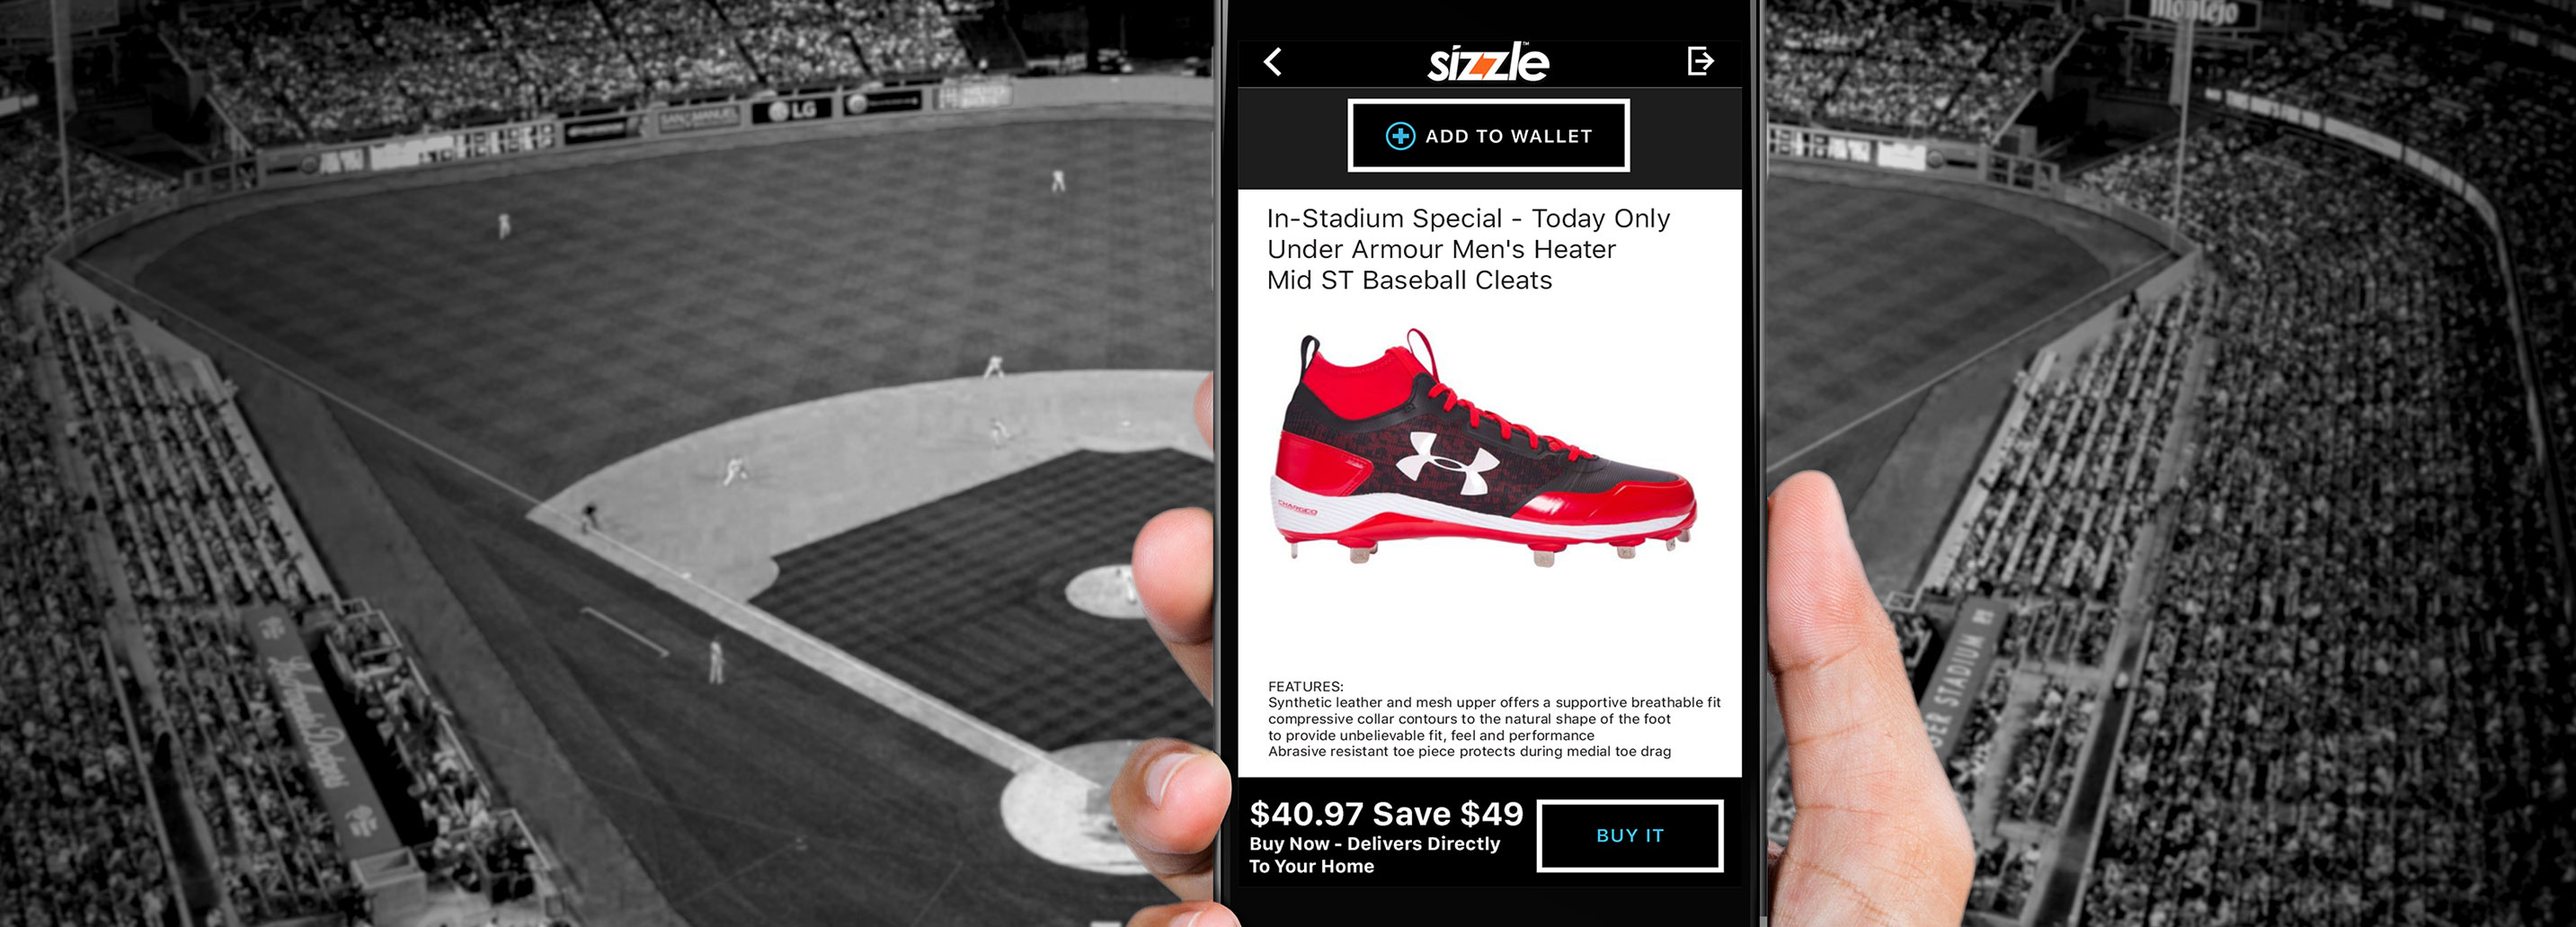 Sizzle Uses GPS To Trigger GeoSpecific Deals